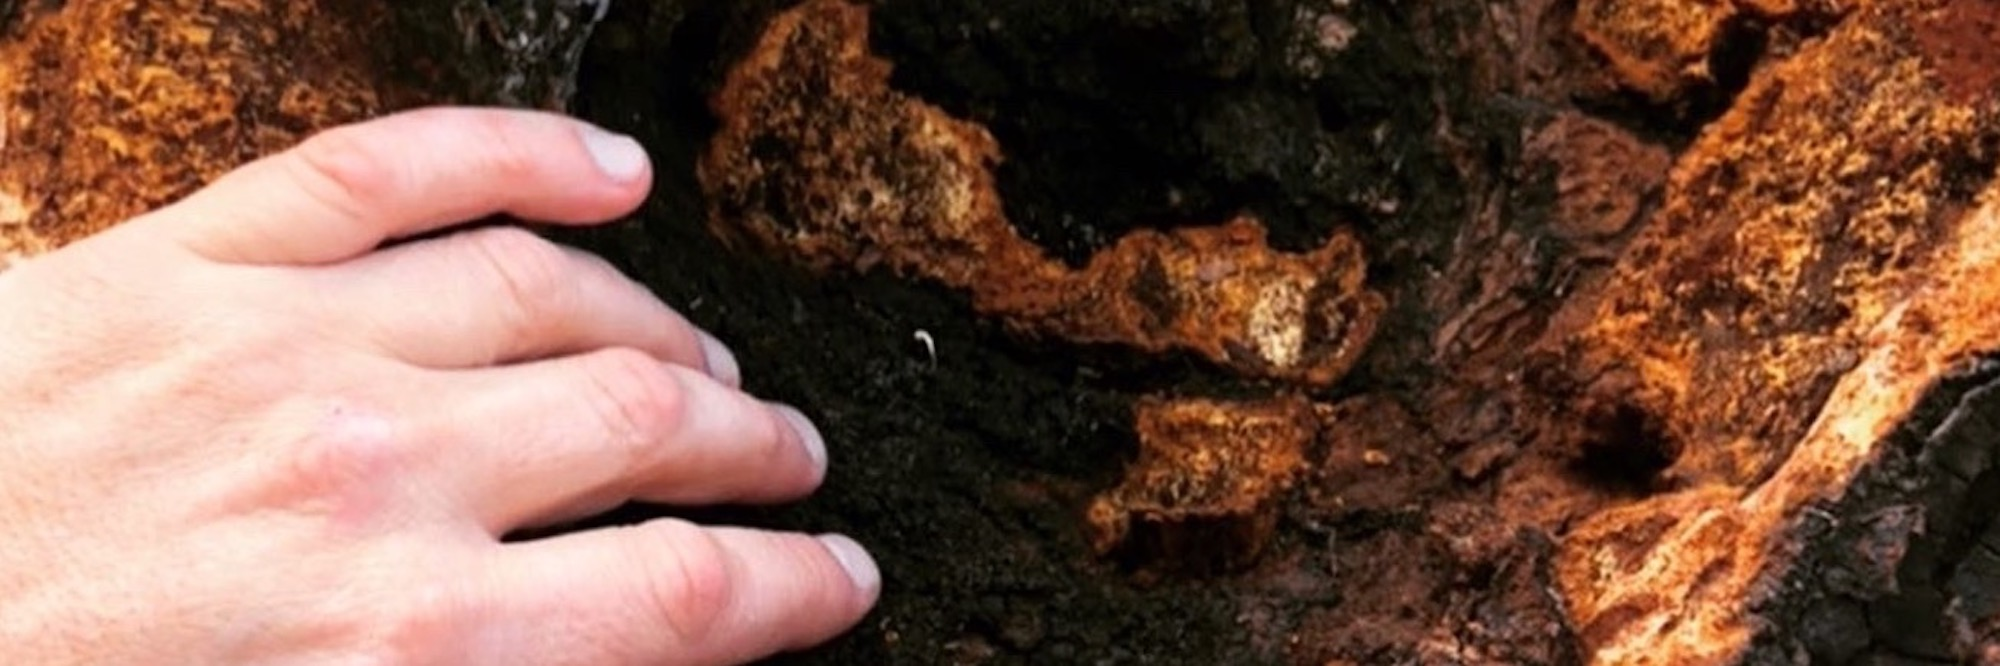 how to find and harvest chaga